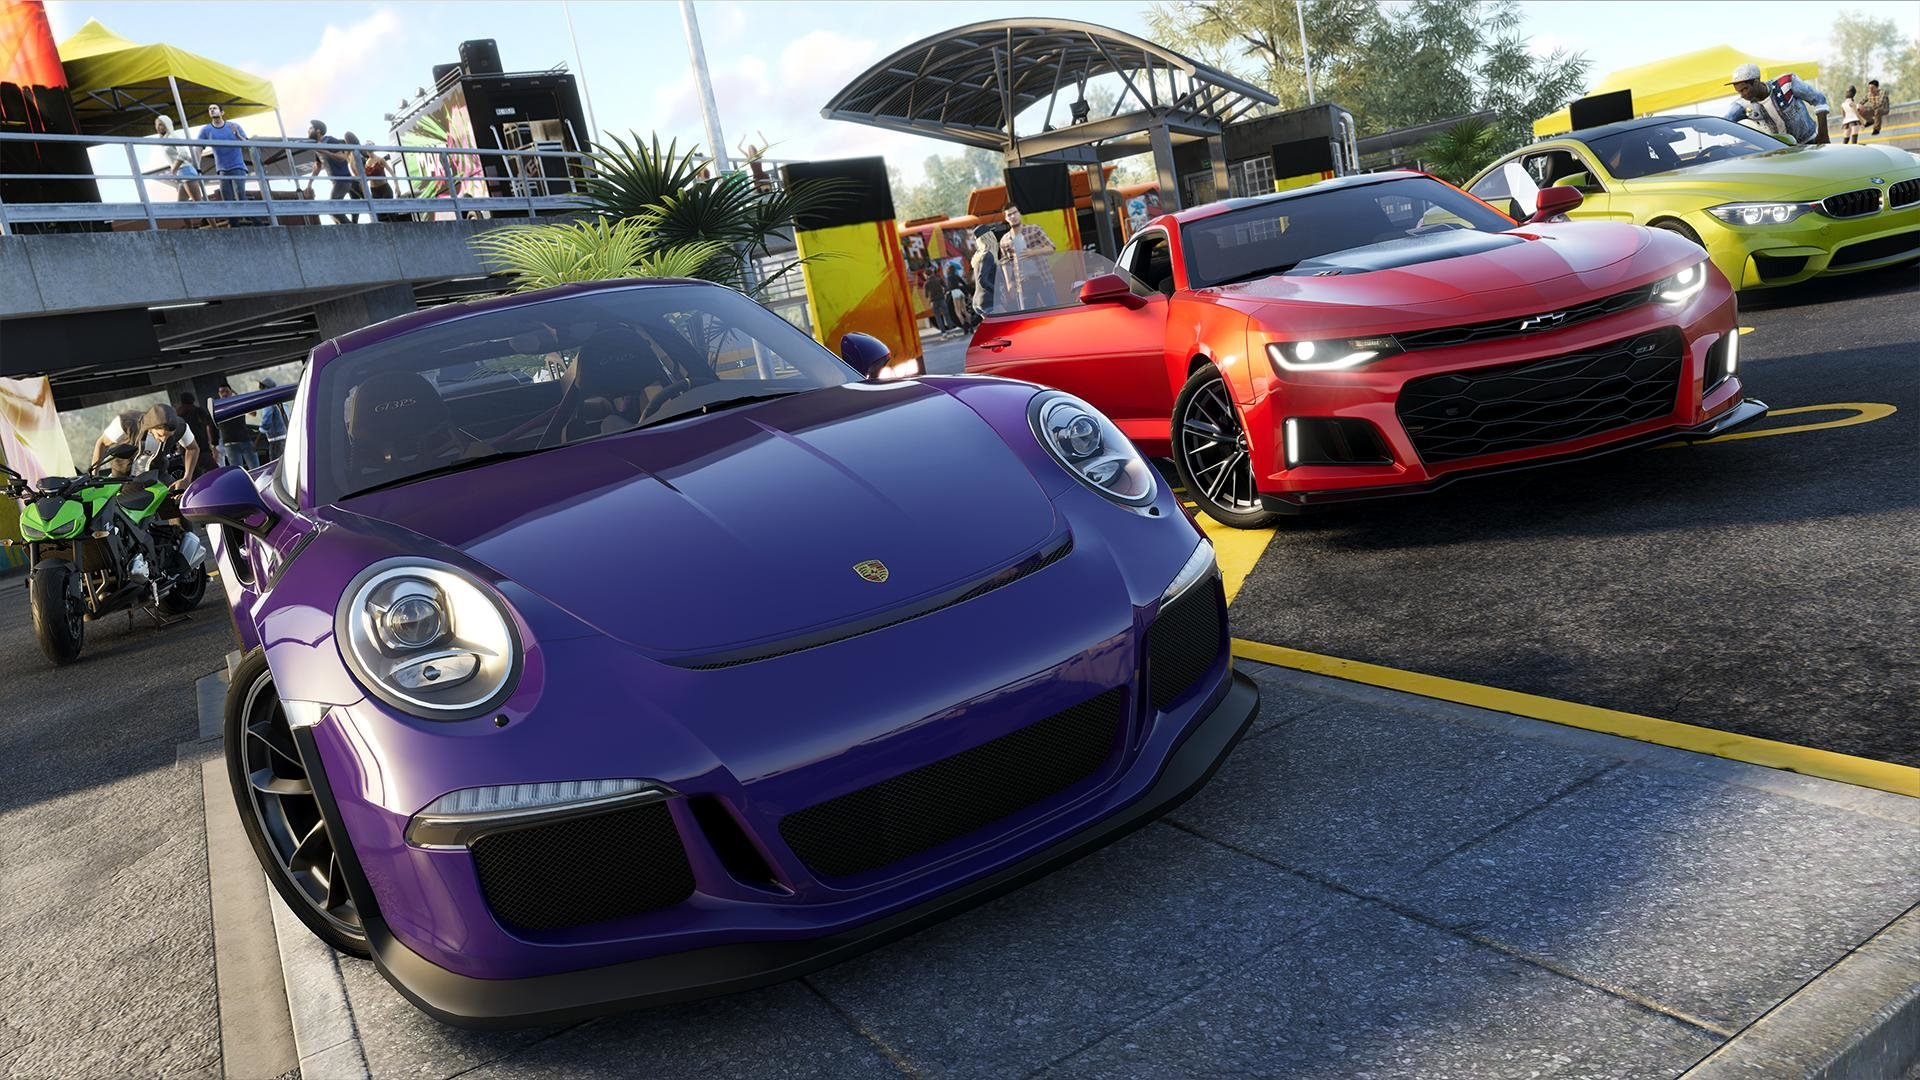 Video Game - The Crew 2  Porsche Chevrolet Camaro BMW Porsche 911 Chevrolet Camaro ZL1 BMW M4 Purple Car Red Car Yellow Car Car Sport Car Wallpaper